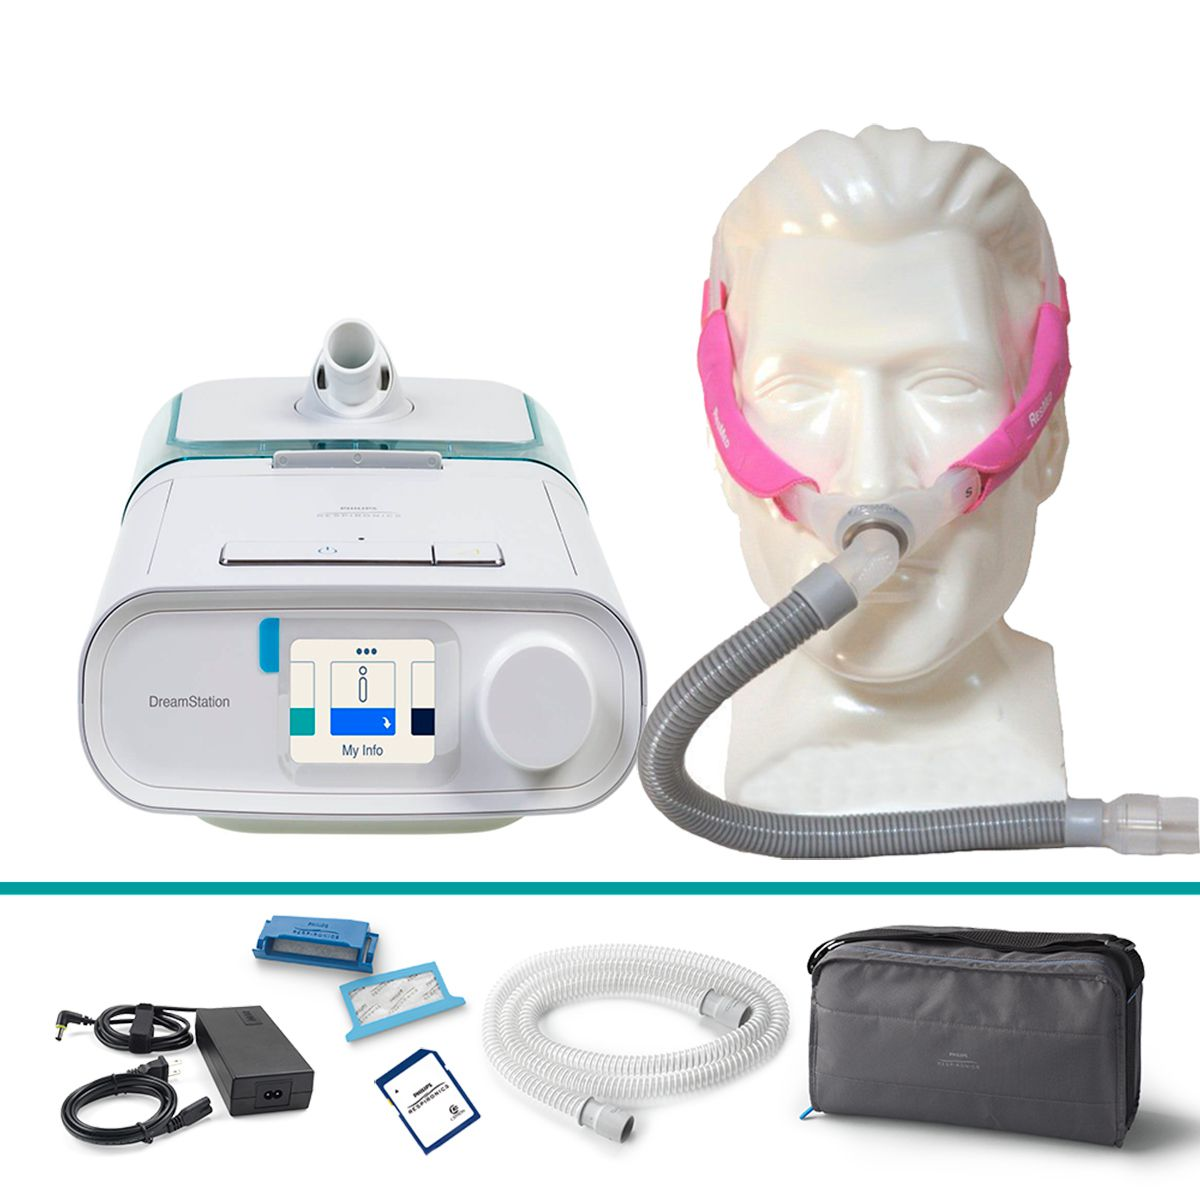 Kit CPAP Automático DreamStation + Umidificador + Máscara Nasal Swift FX For Her Resmed